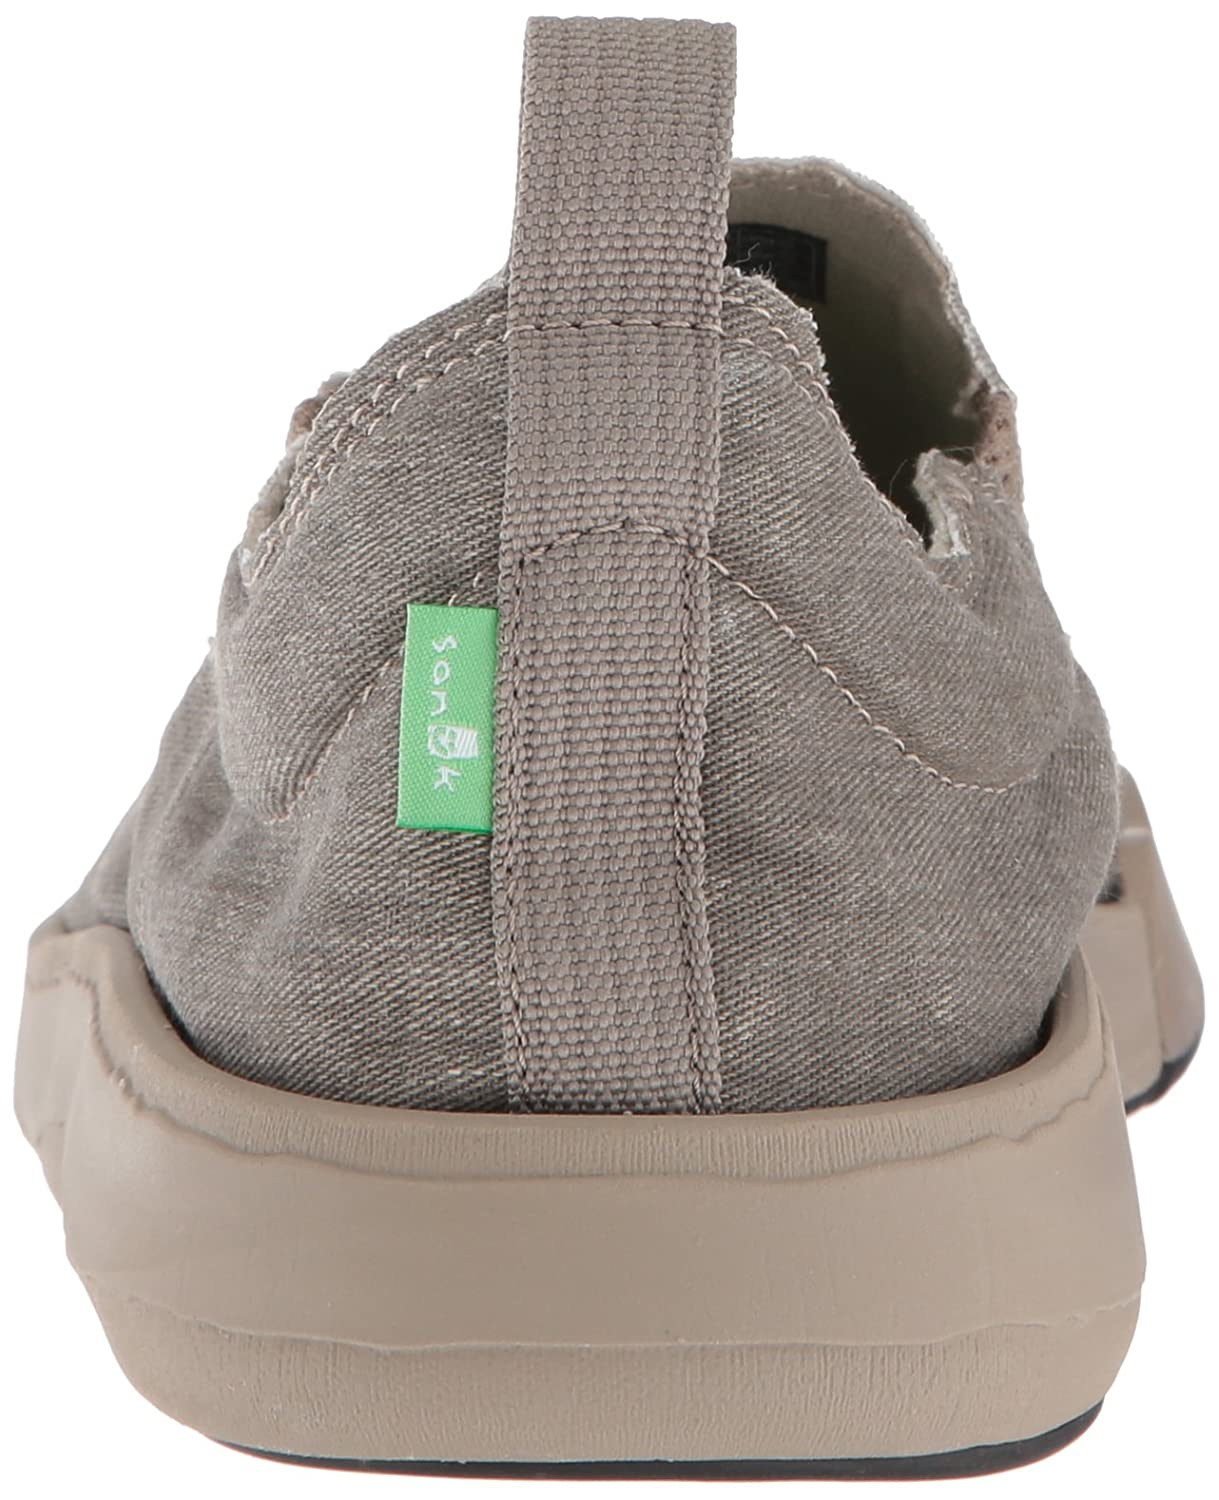 Quest Tennis 1091089 Sanuk Chiba Chaussures Homme F1T5KuJlc3